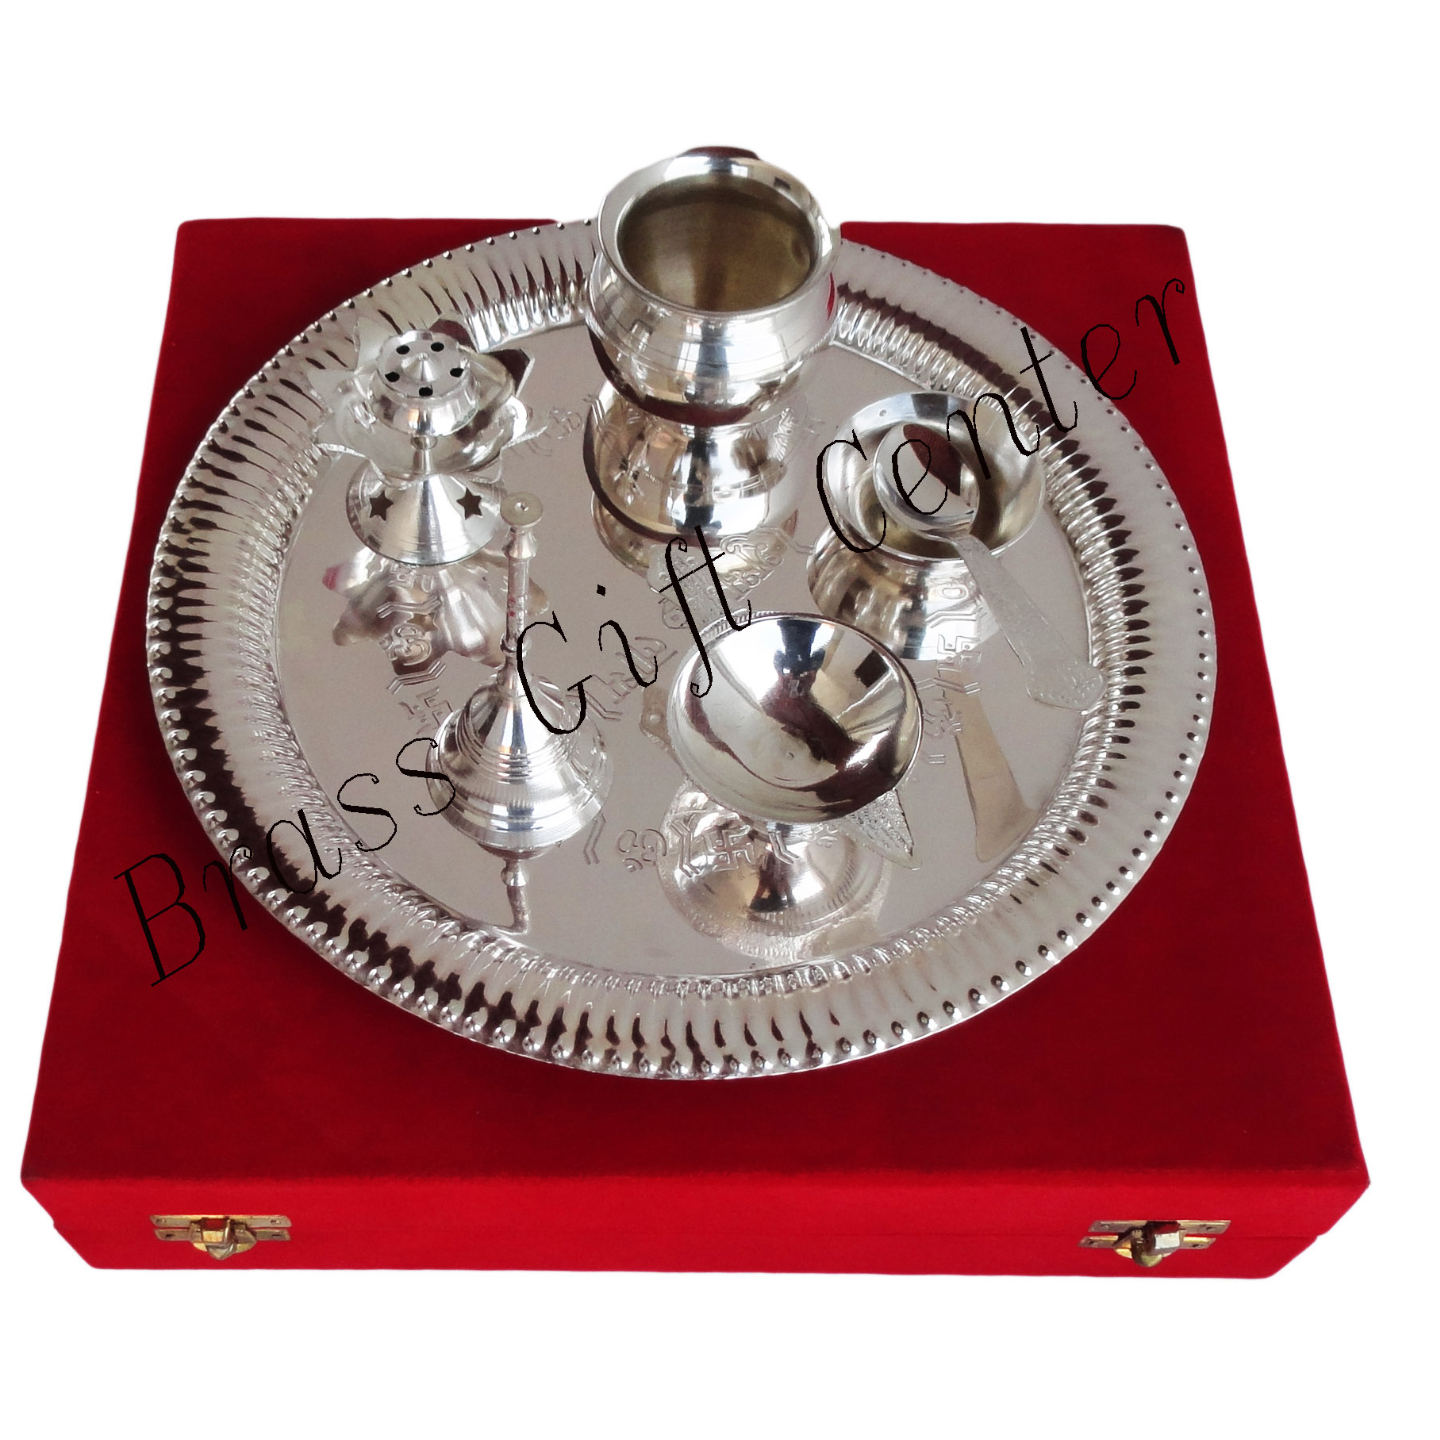 Brass Puja Thali with Deepak, Roli and Rice holder and Agarbatti Stand Brass Pooja & Thali Set - 11.5 Inch dia with Silver Plating packed in Red Velvet Box